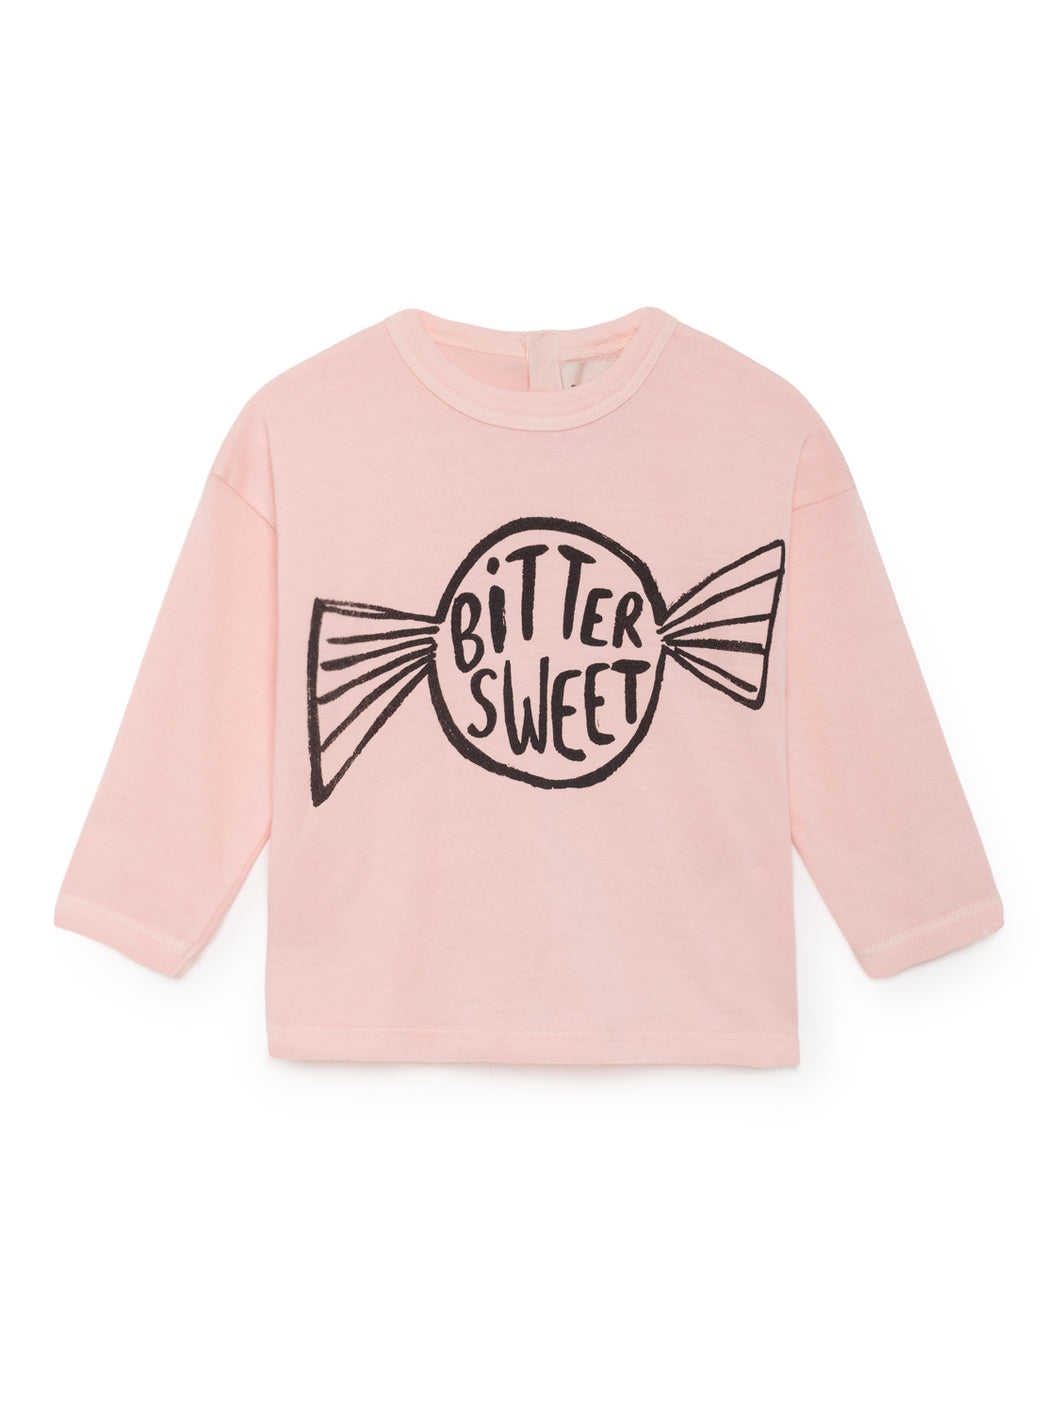 Bobo Choses Baby L/S Tee - Bitter Sweet